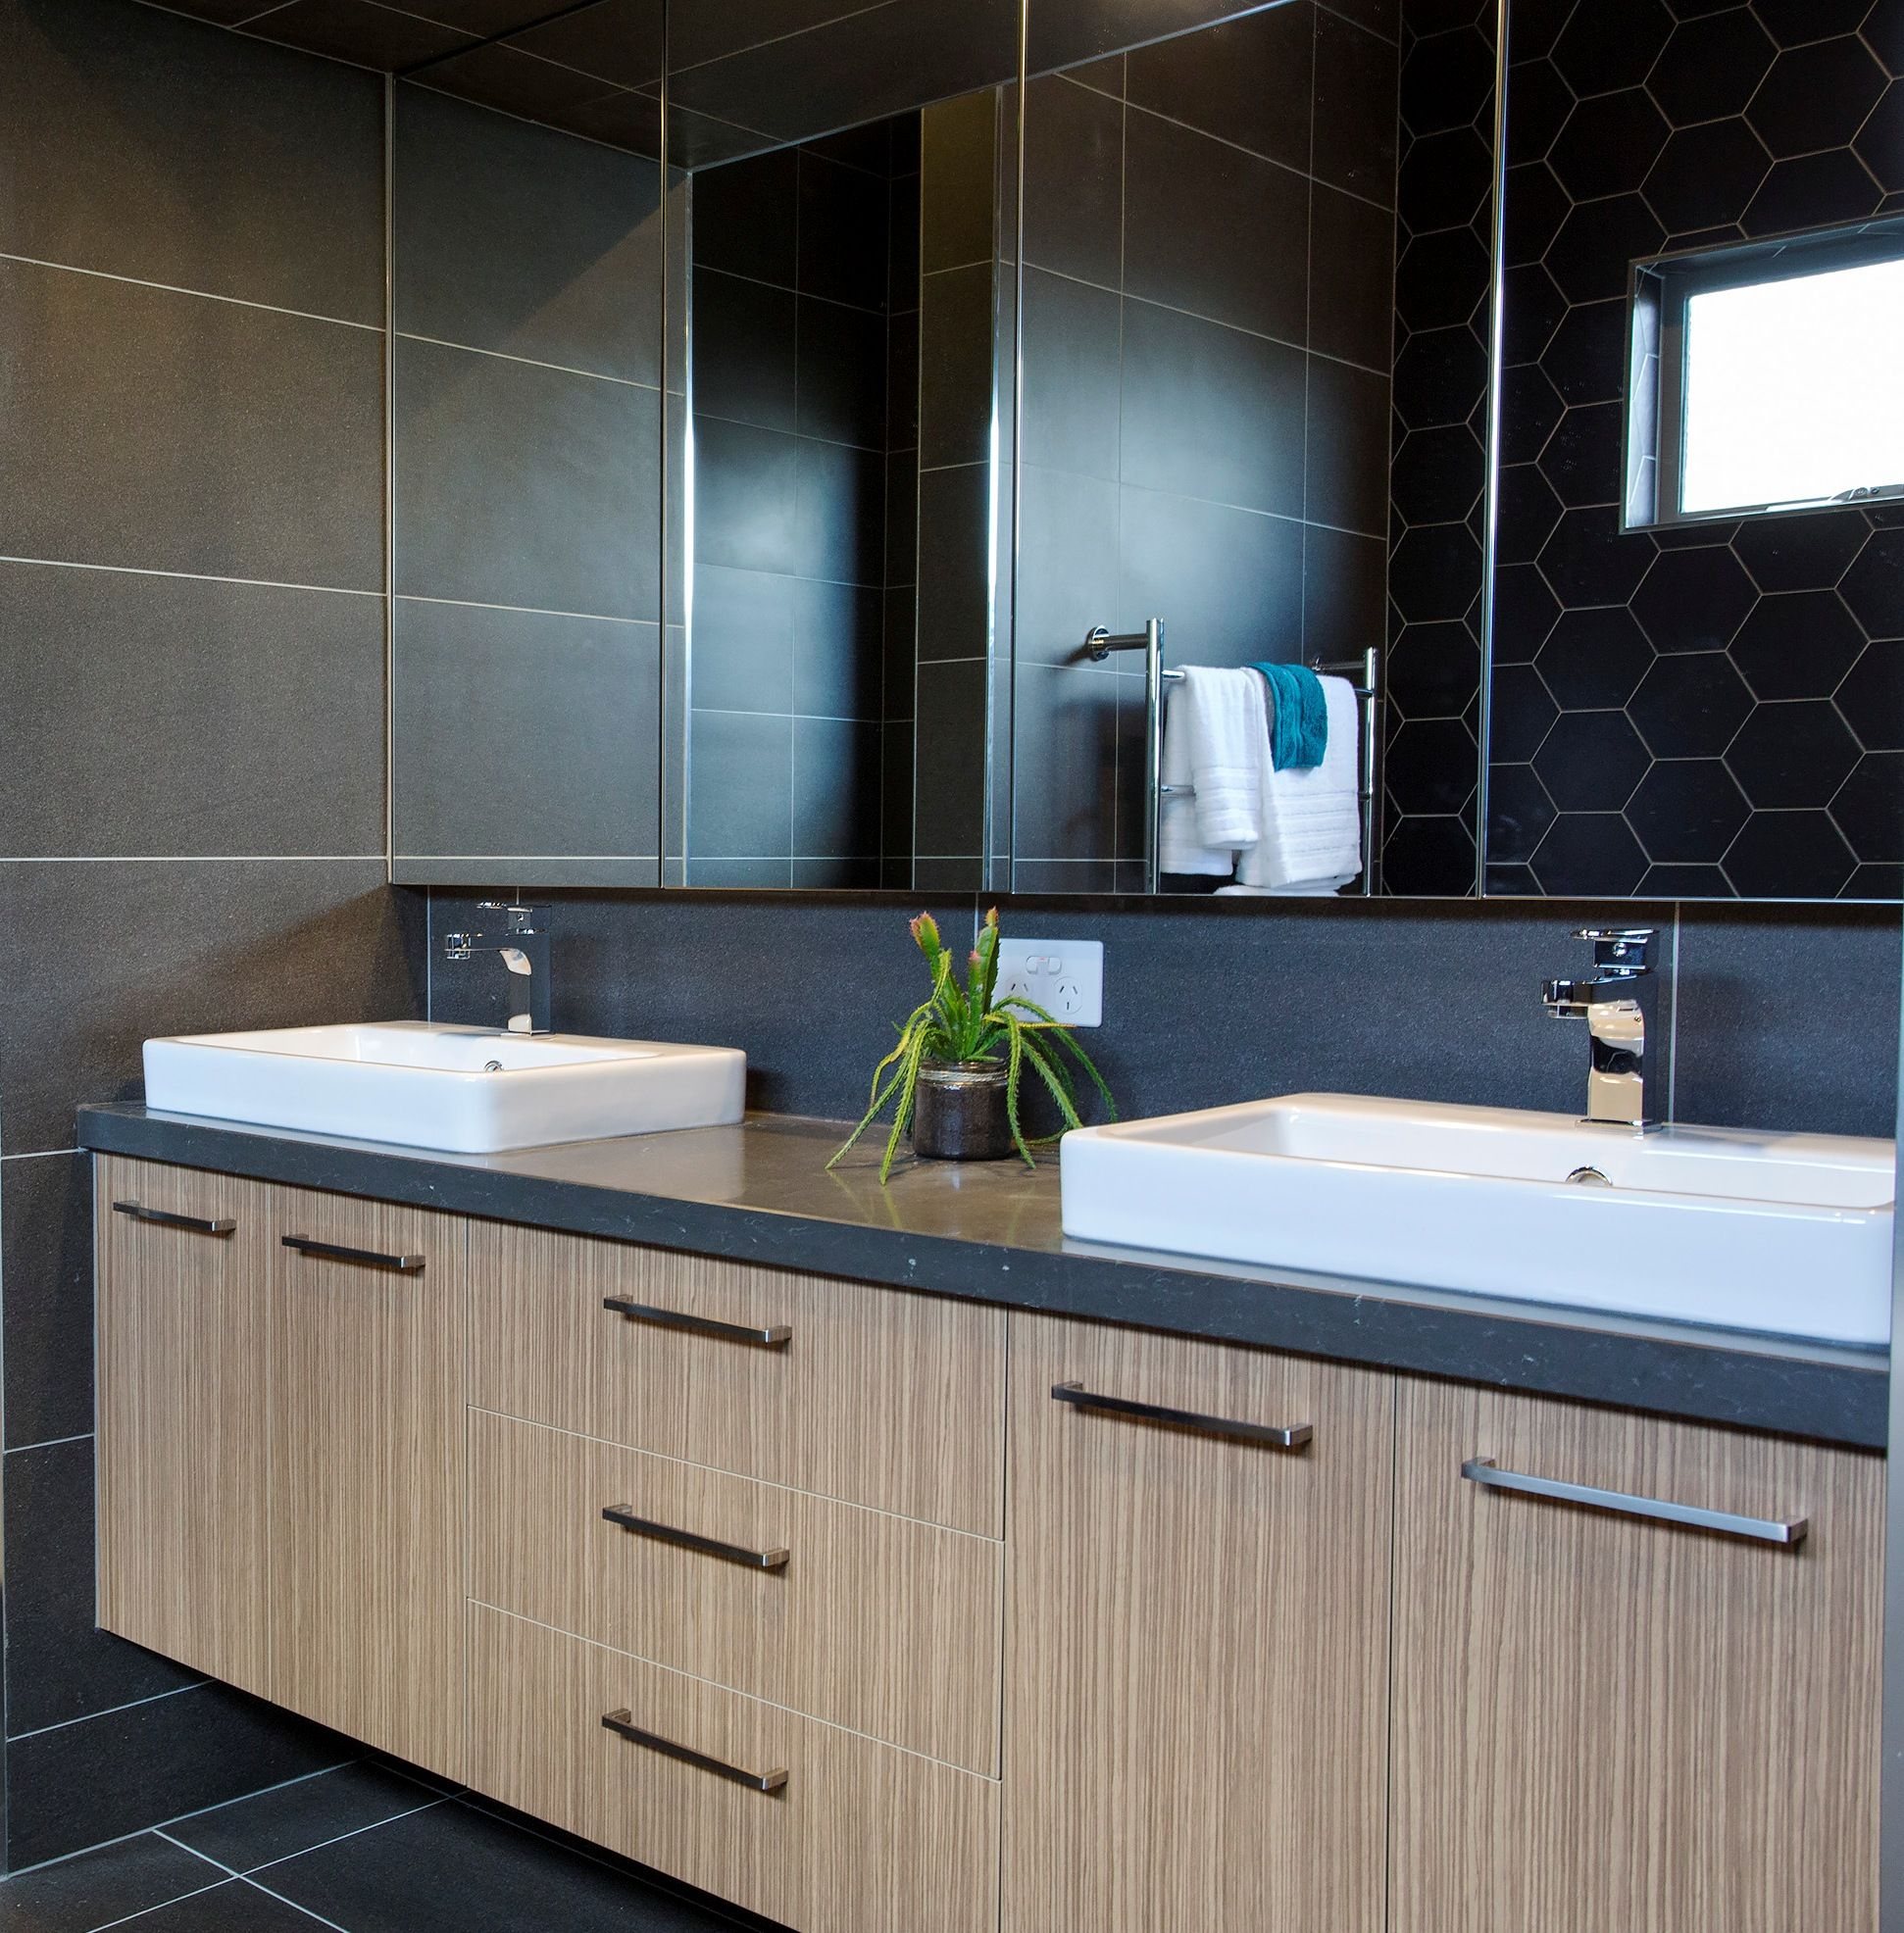 Ensuite Vanity By Bourke's Kitchens Benchtop